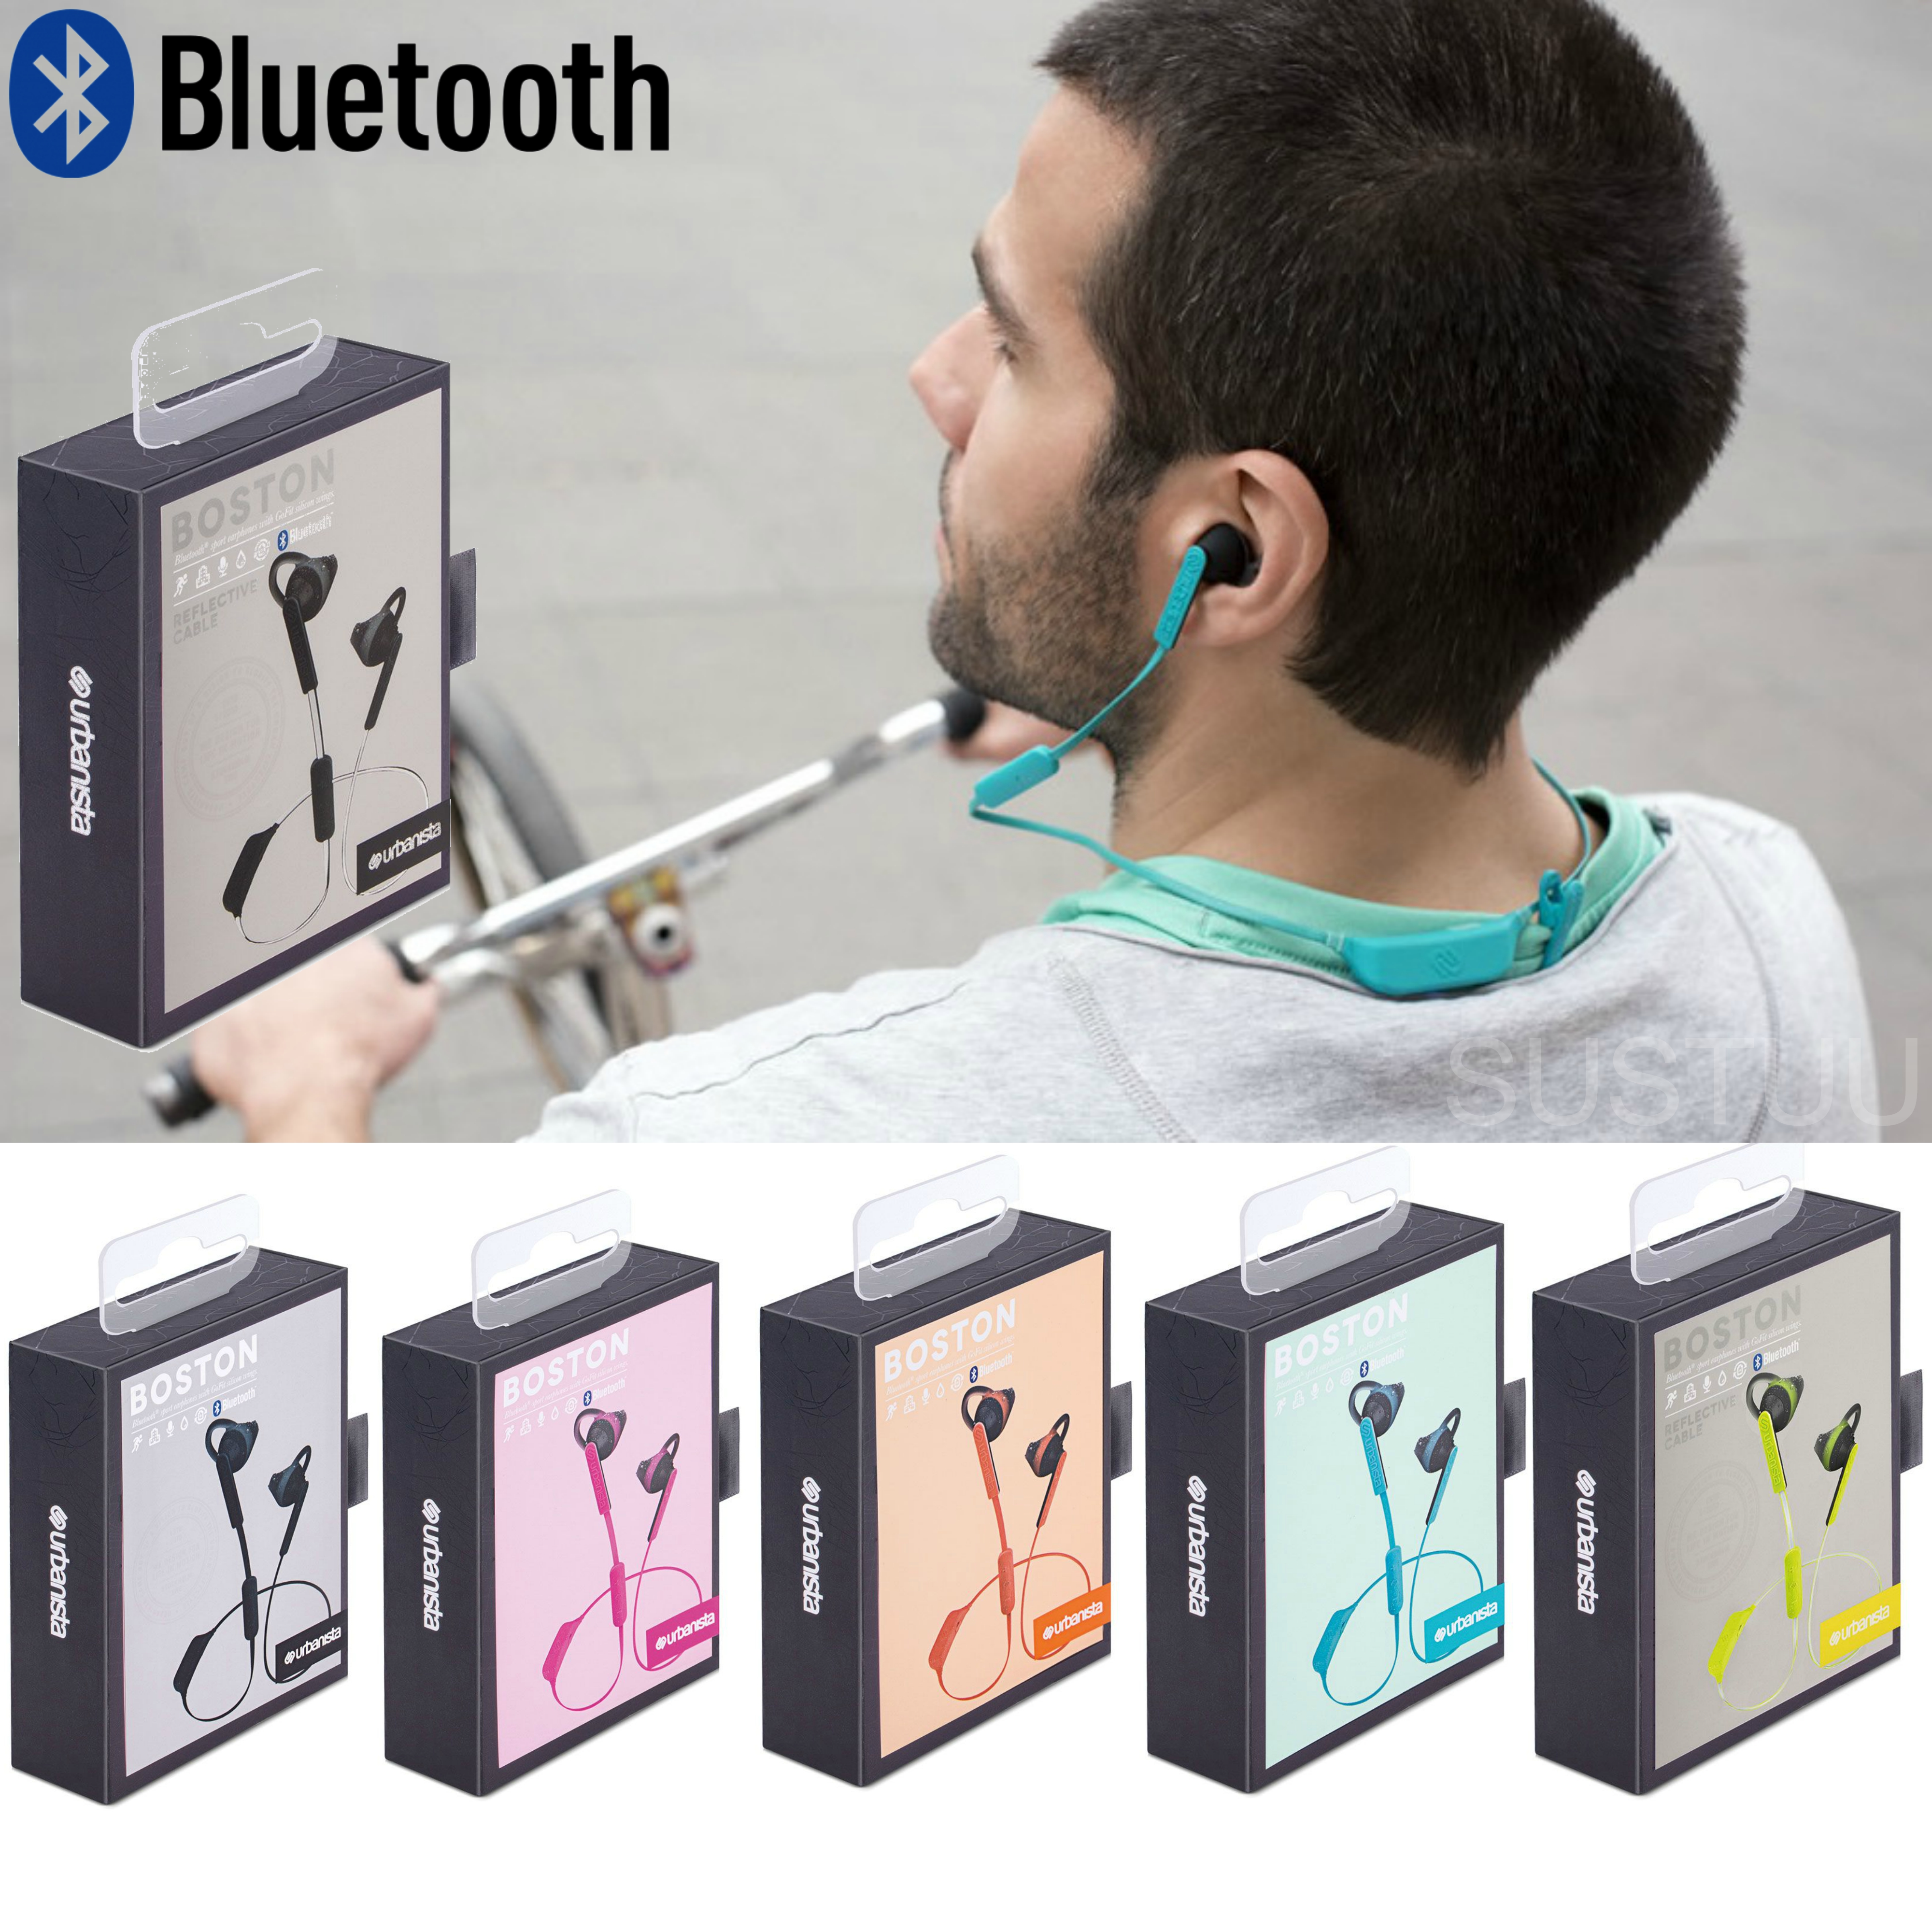 Urbanista Boston Wireless Bluetooth Earphone|Water Sweat Resistant|Multi Color